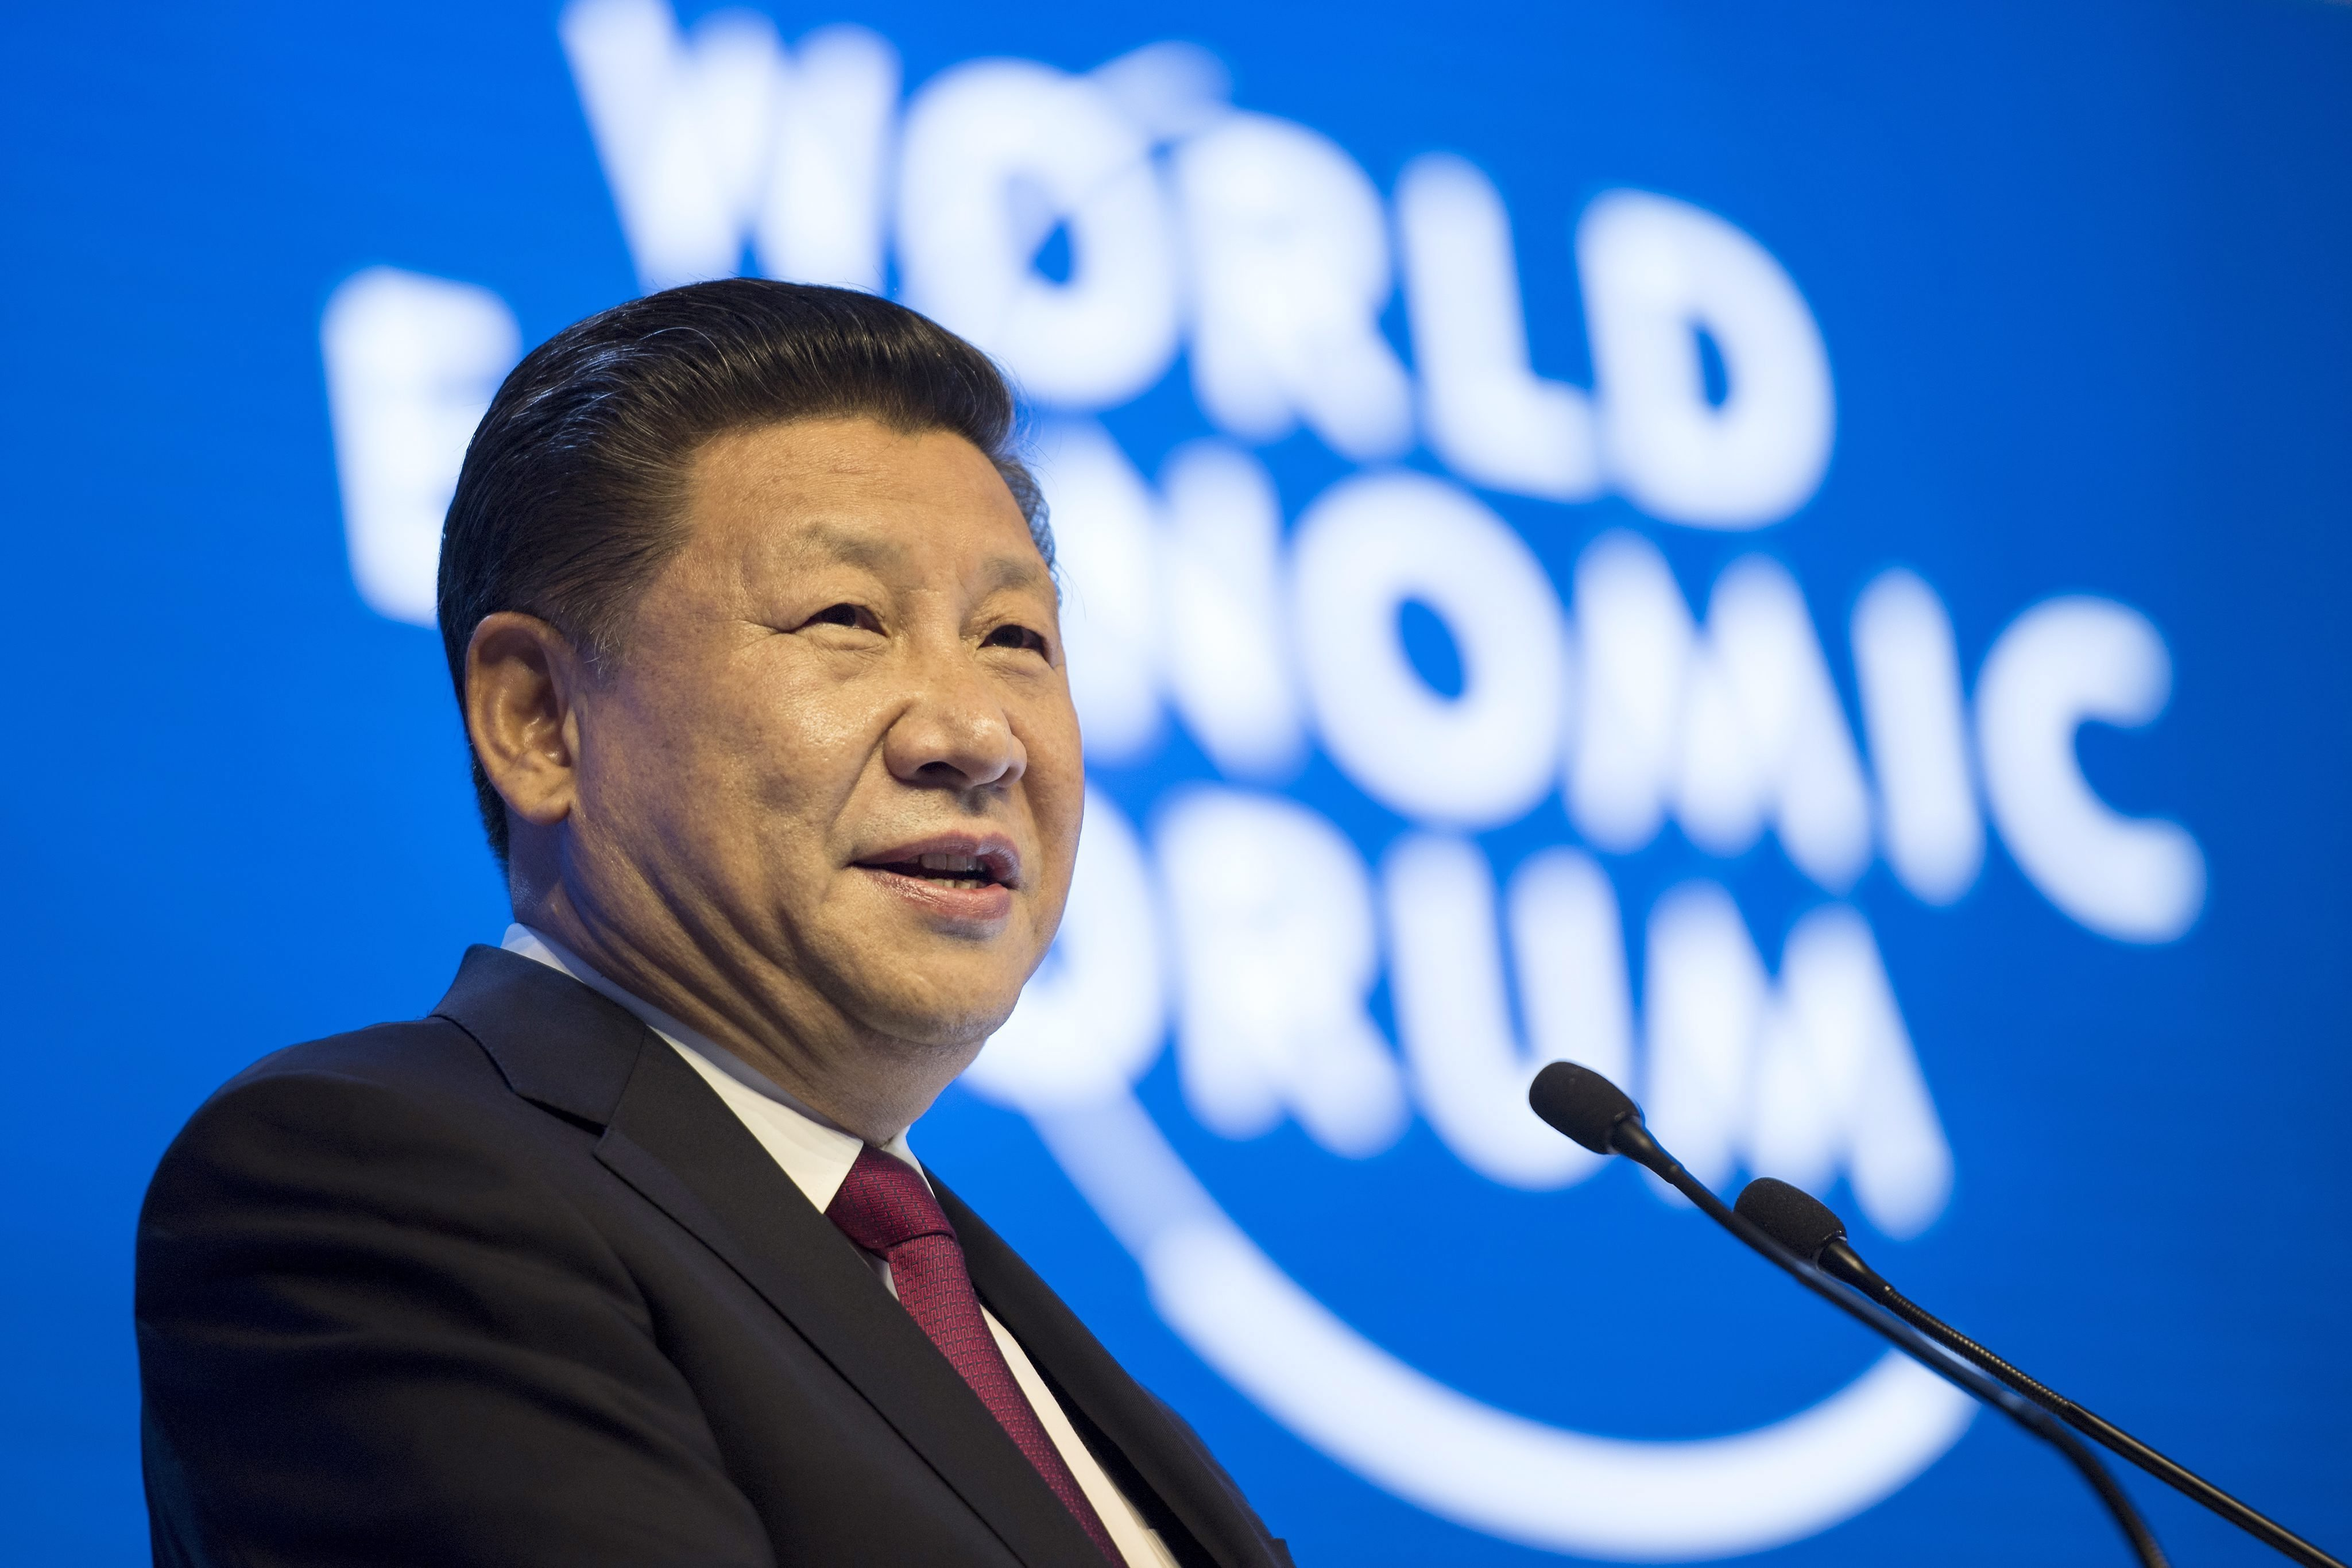 Trumps choice for us attorney general says he can stand up to him hindustan times - Xi Jinping Appeared This Morning At The World Economic Forum A First For A Chinese Leader With A Full Throated Defense Of Globalization